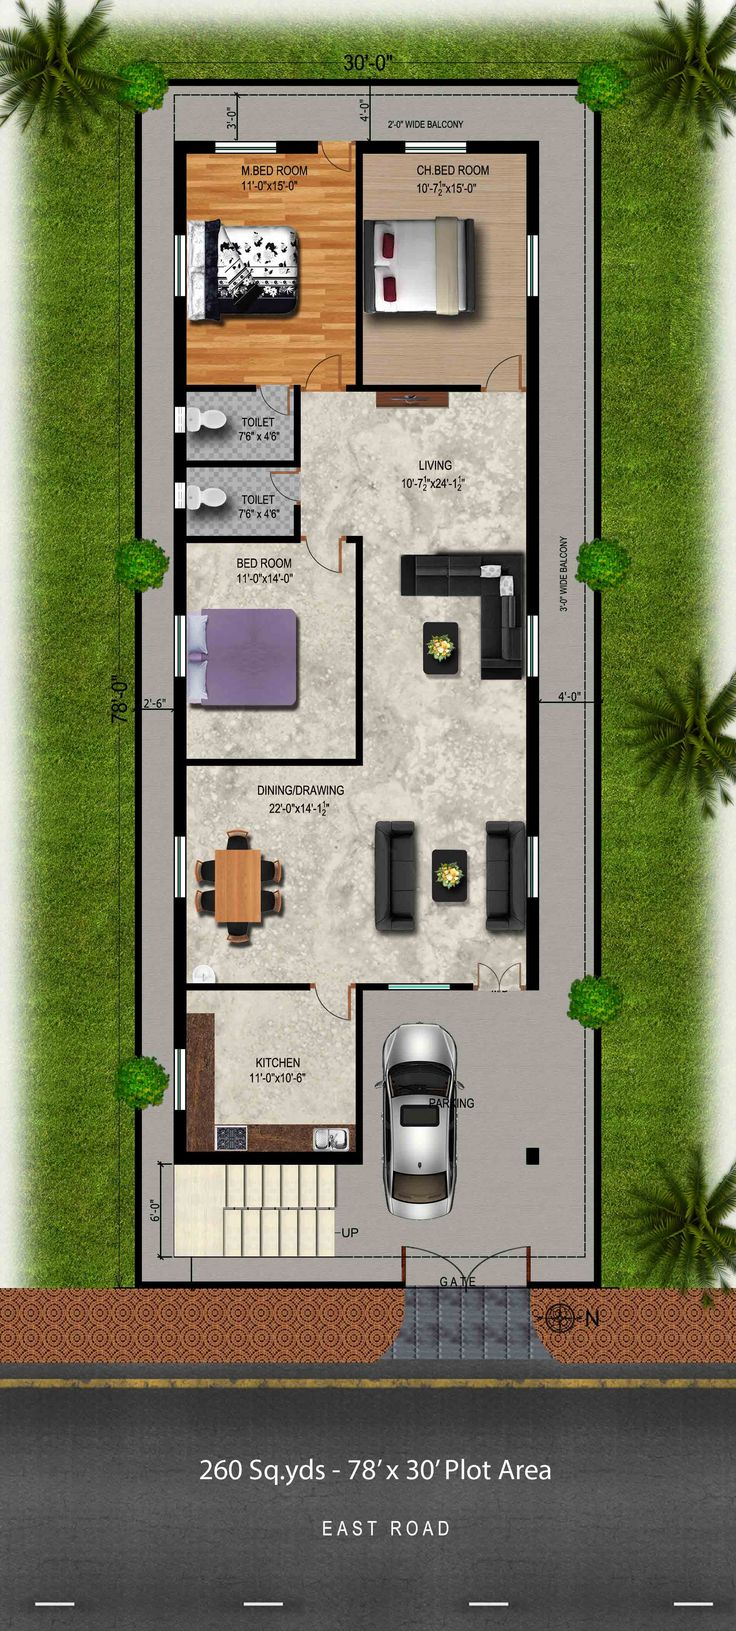 260 sqyds30x78 sqft east face 10 best Small Home Plans images